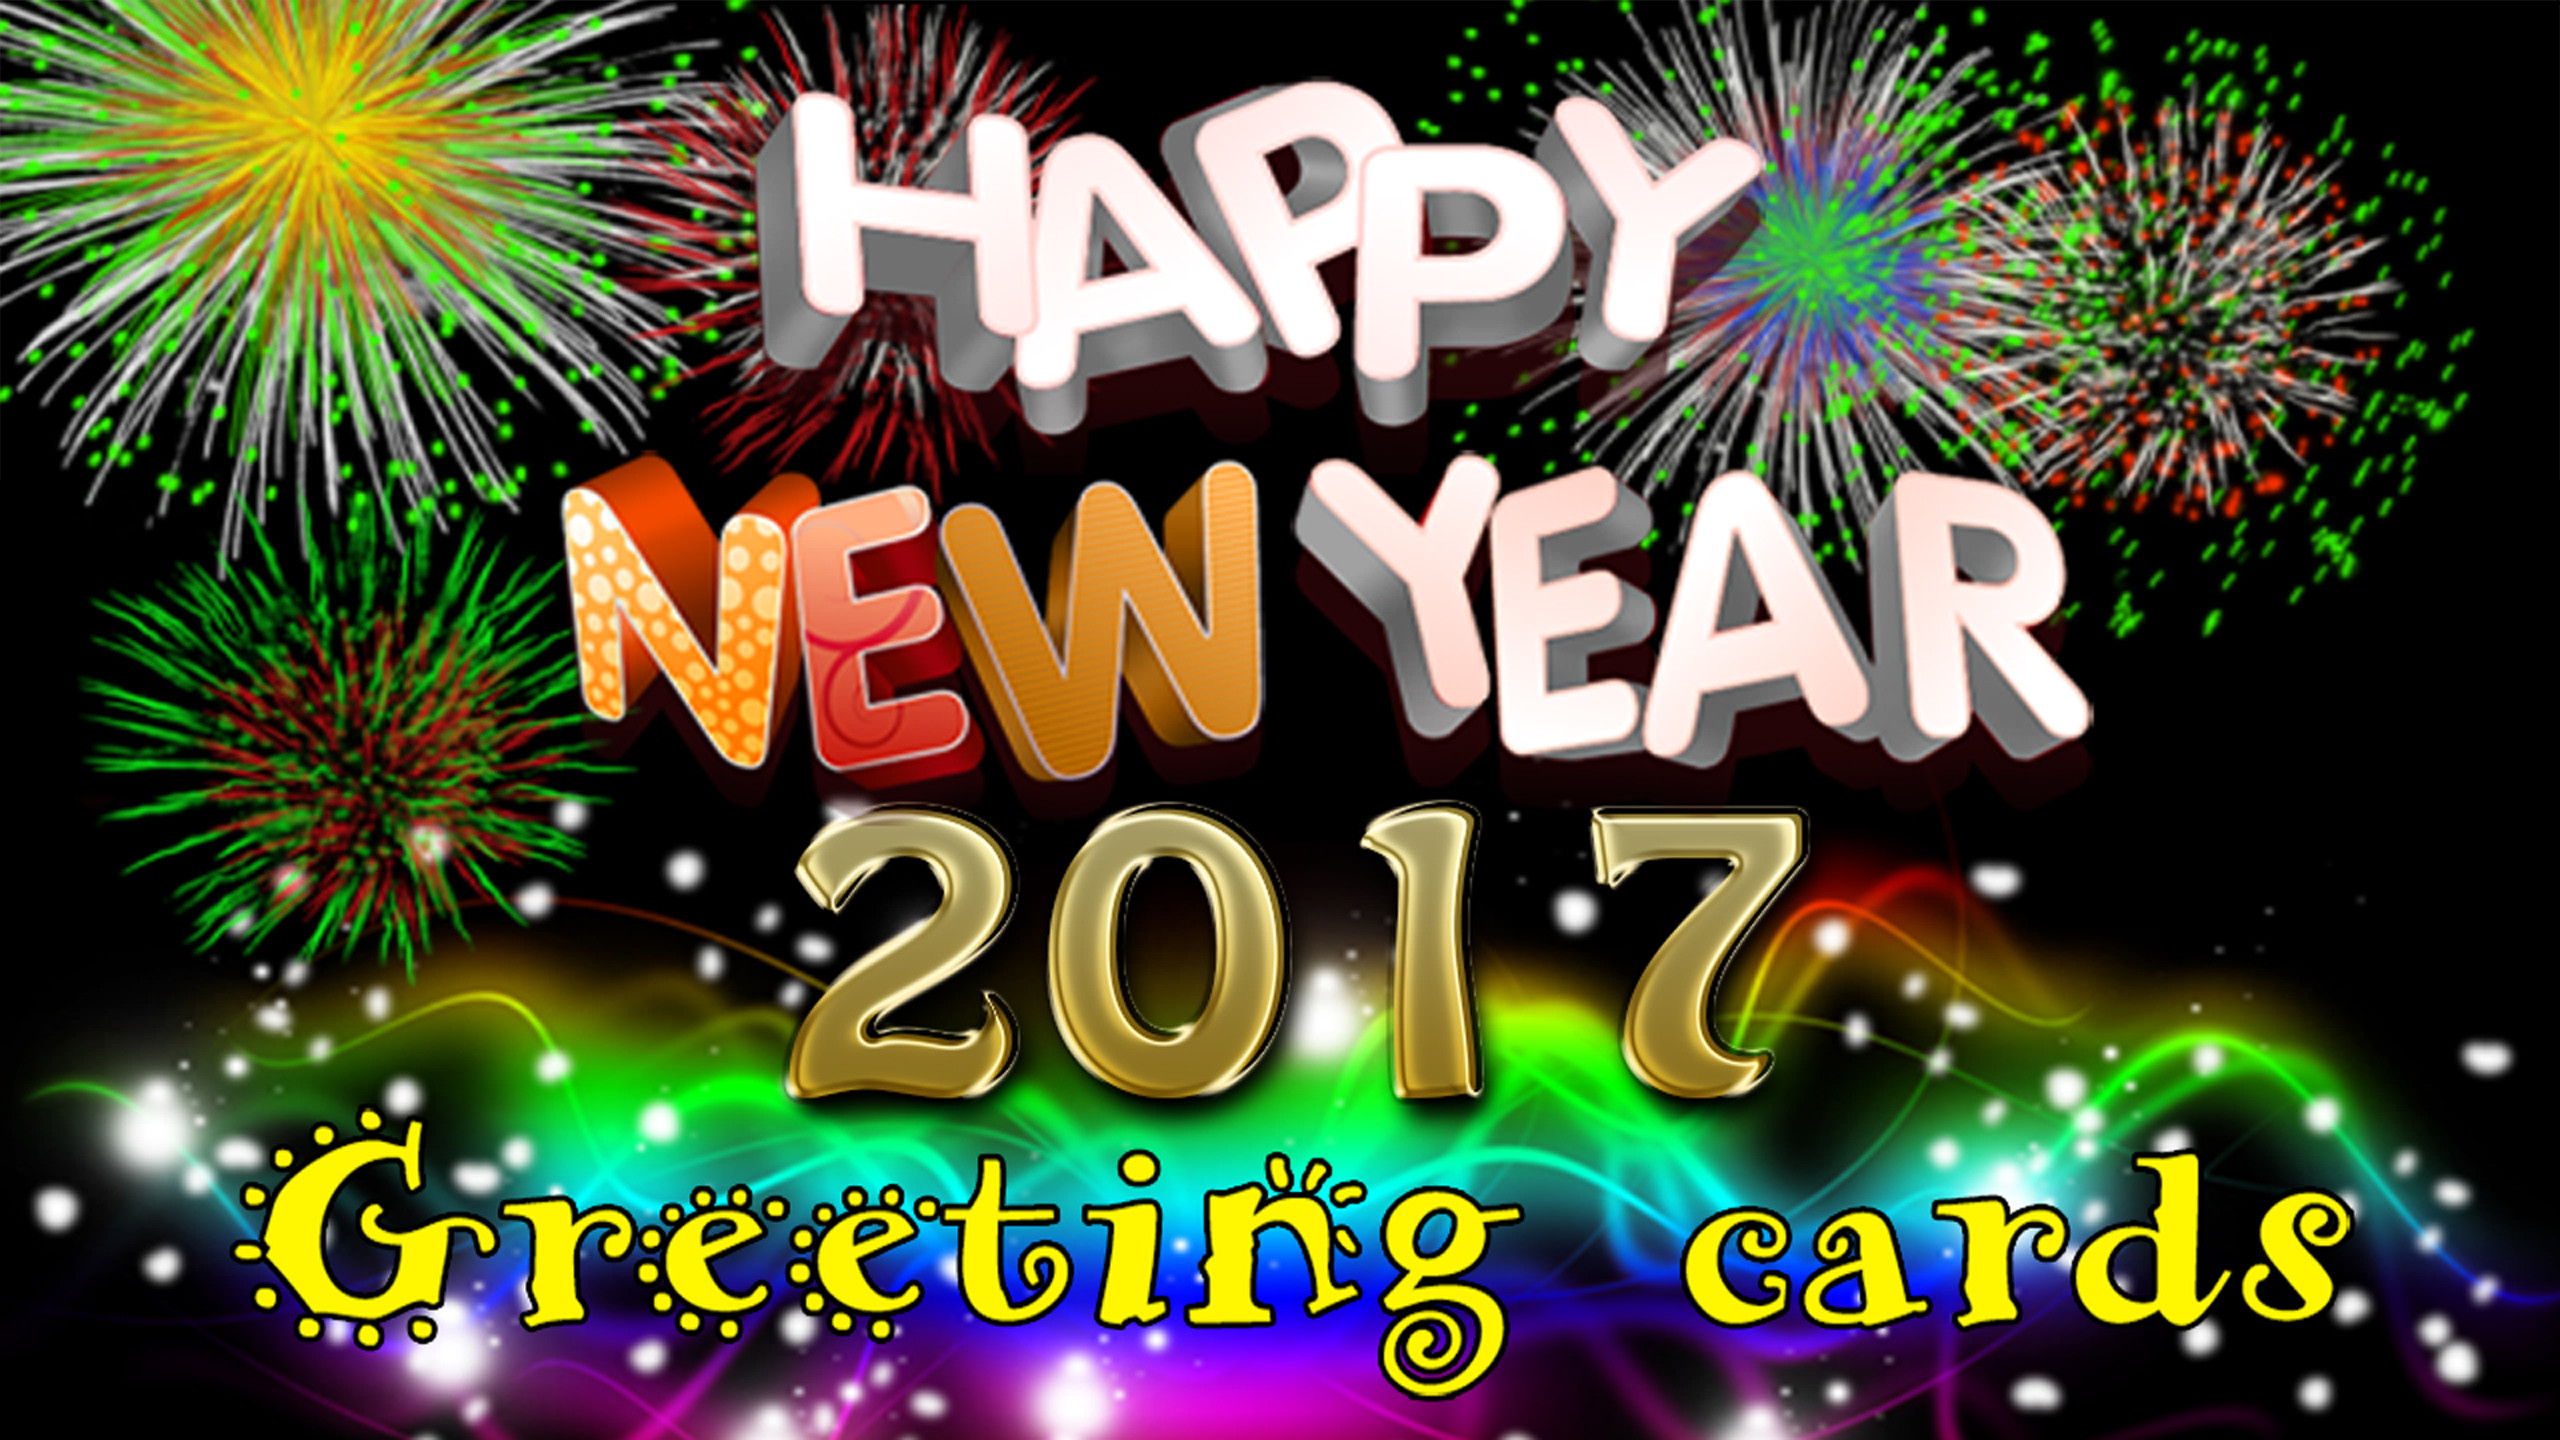 Happy New Year 2017 Greetings Cards Desktop Wallpaper Hd For Mobile Phones  And Laptops : Wallpapers13.com